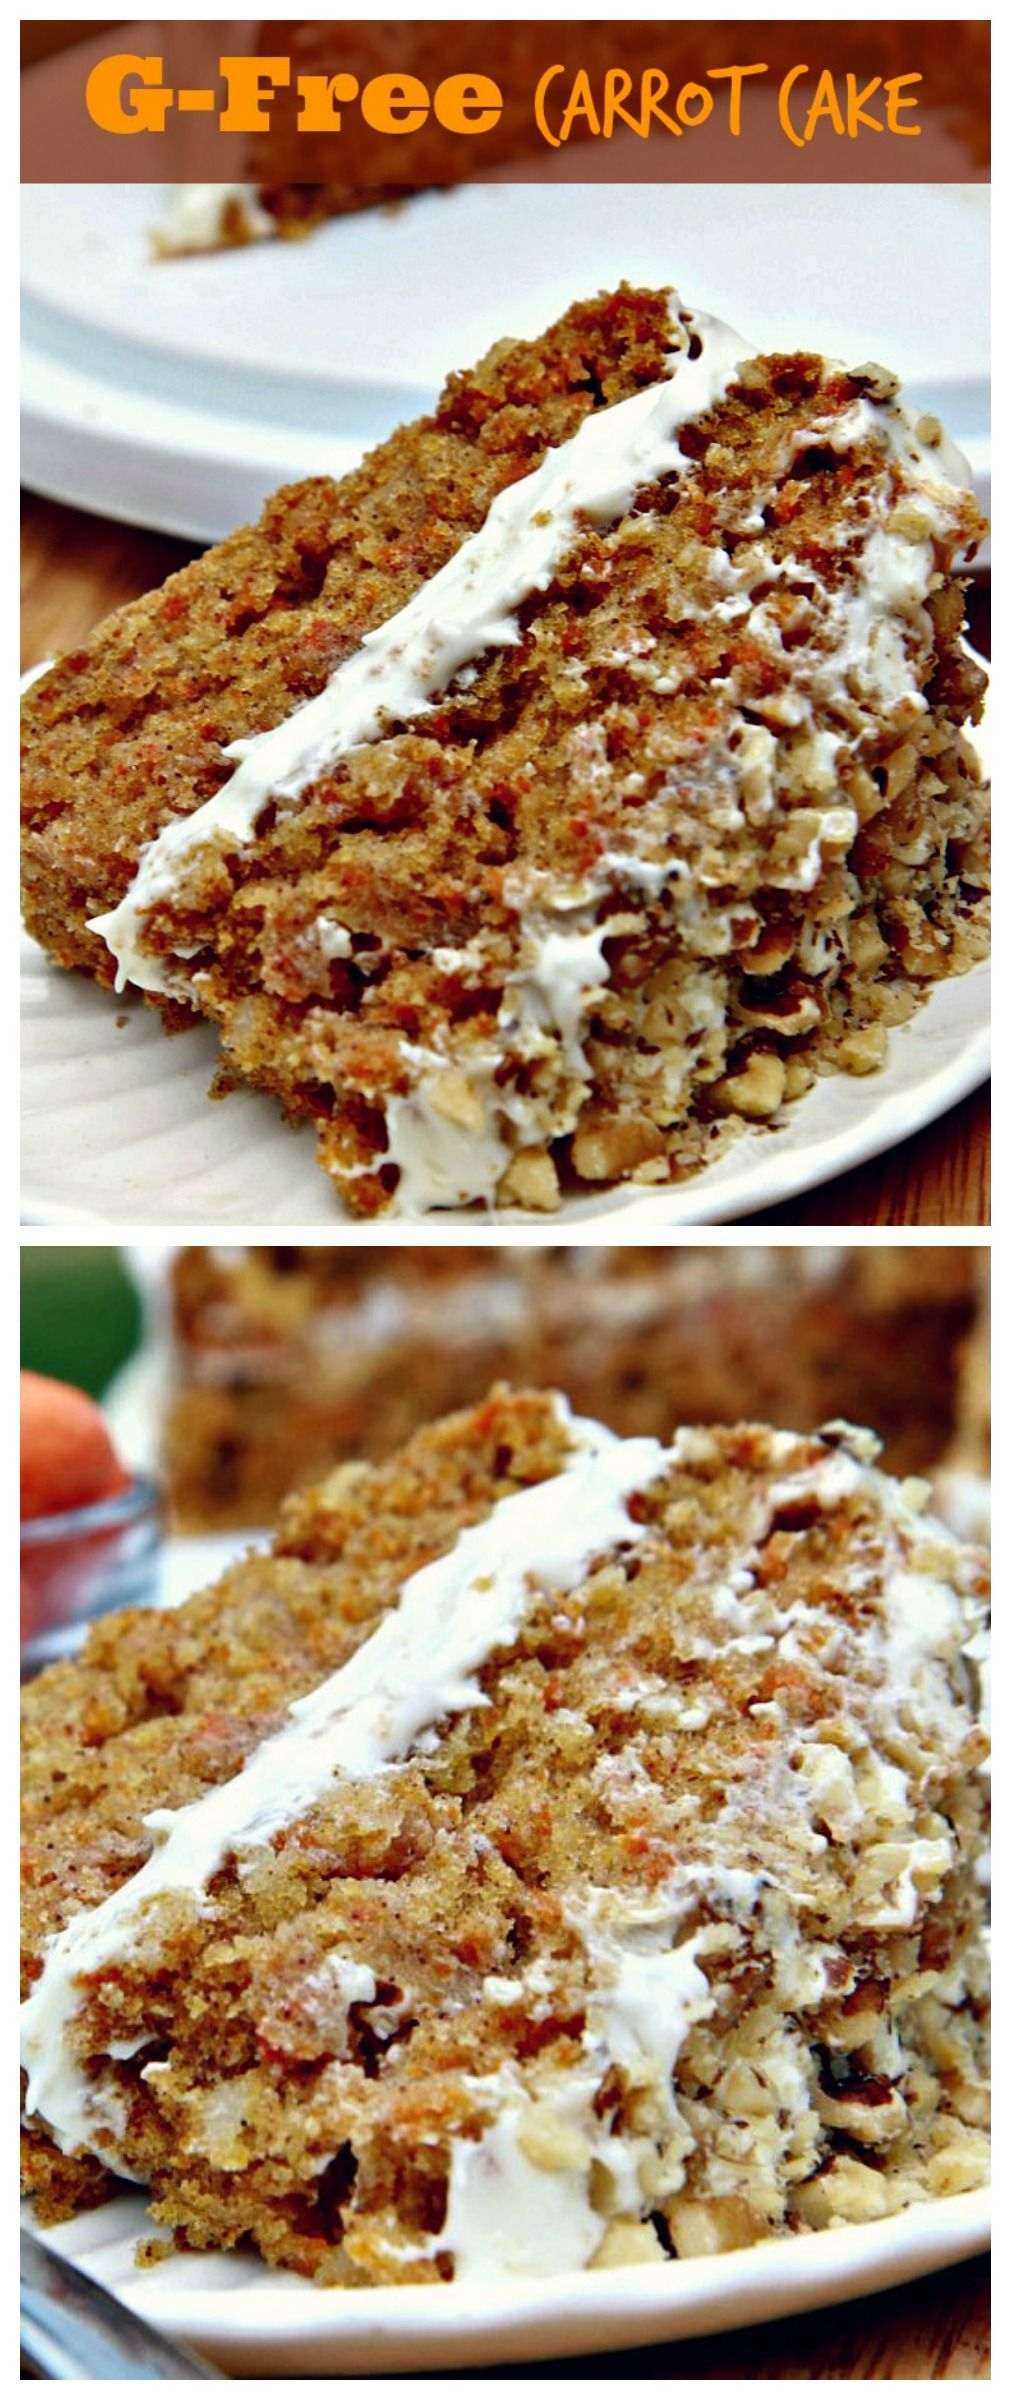 Taste this fluffy moist glutenfree carrotcake Gluten free